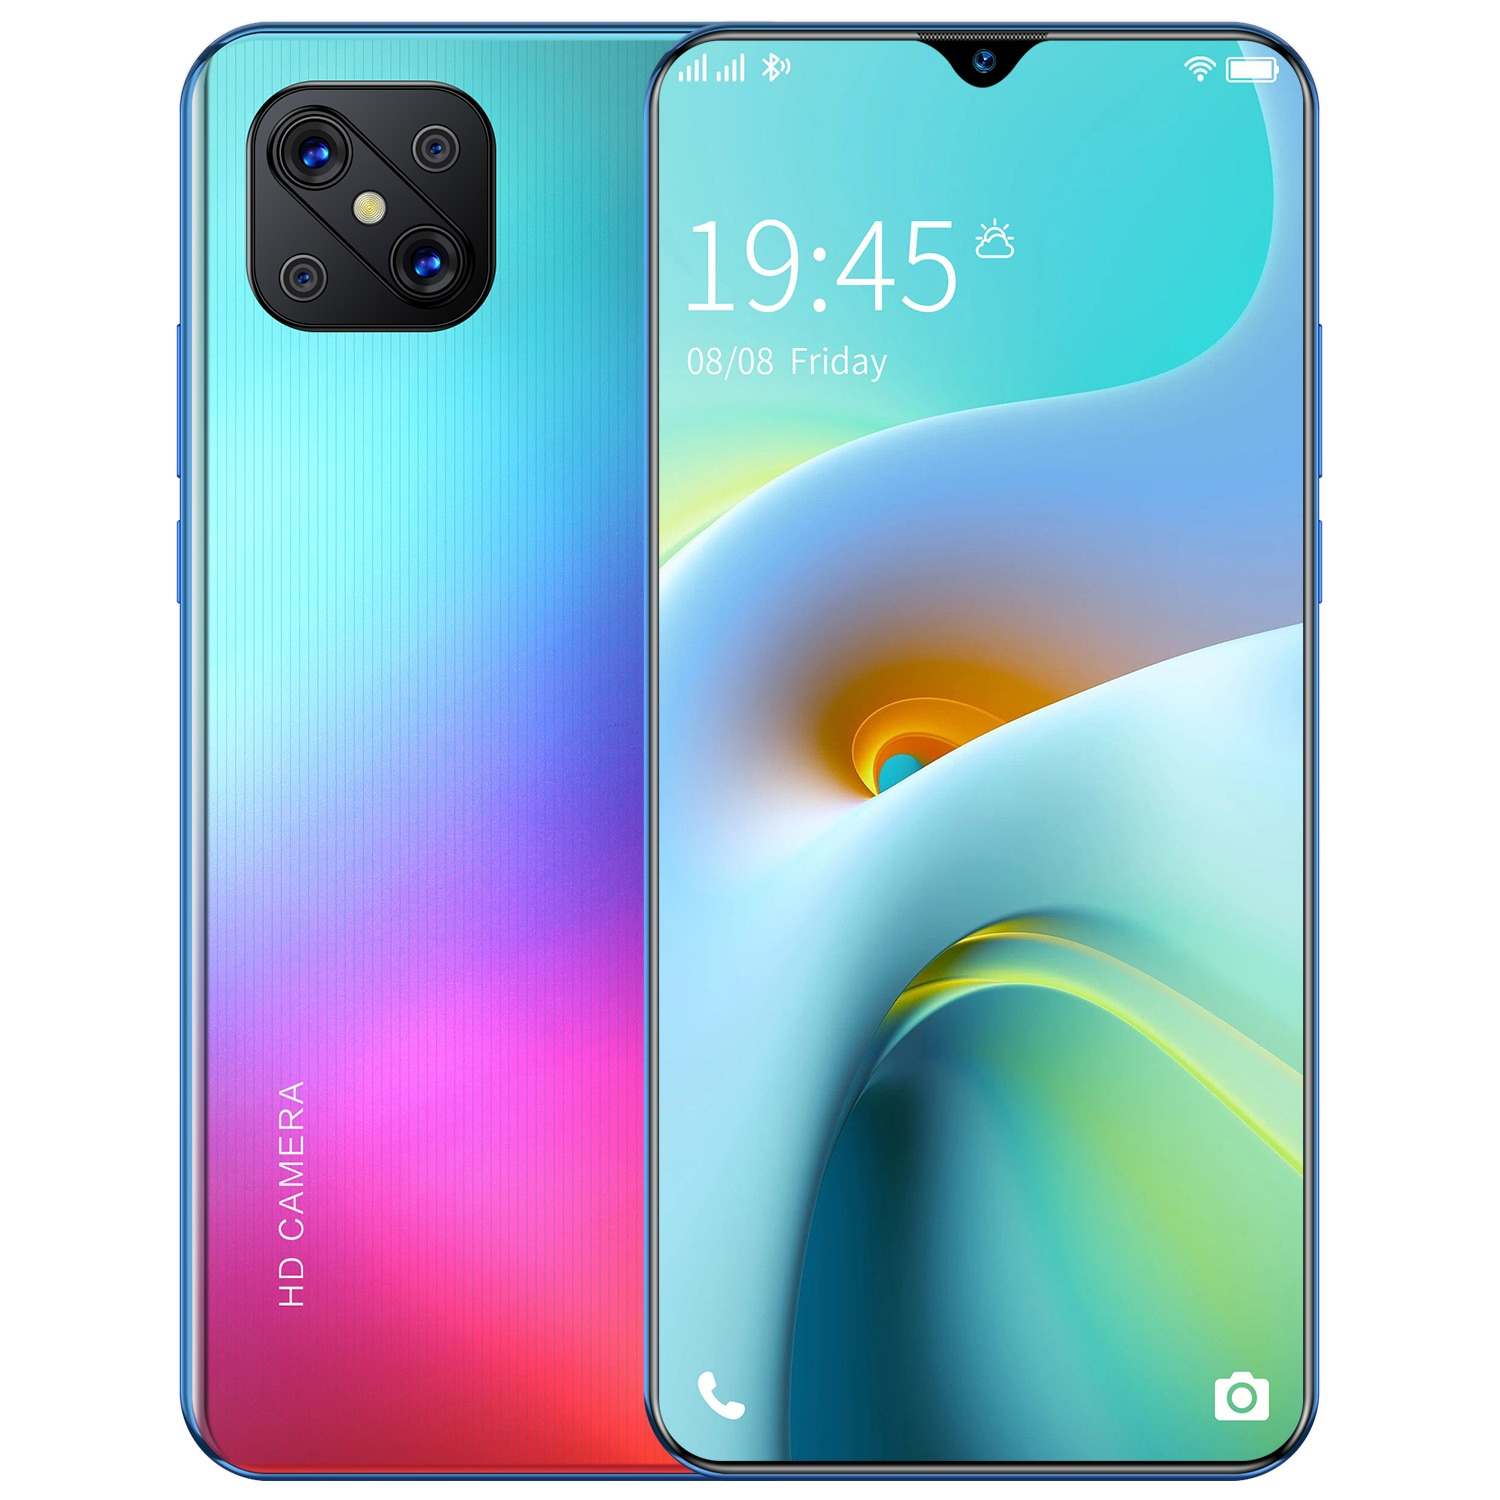 A92s 2021 Latest Smartphone 1GB RAM 8GB ROM 6.7inch Screen HD Camera 2800mAh Big Battery Mobile Android Cellphone Celulares